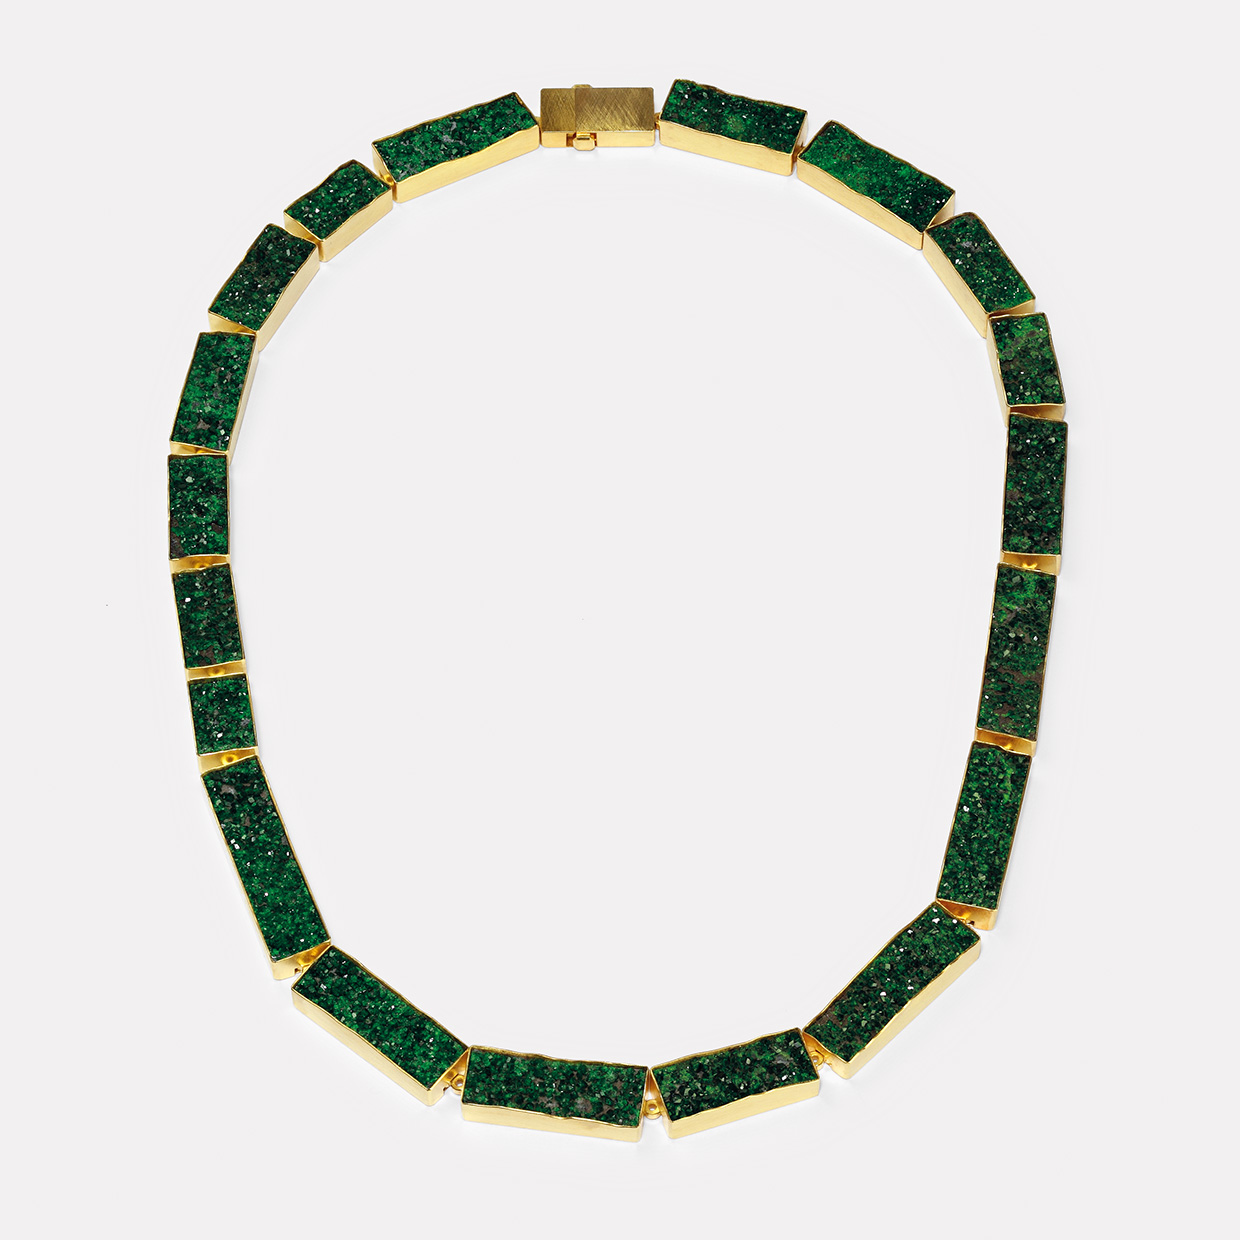 necklace  2018  gold  750  uwarowit  570x11  mm